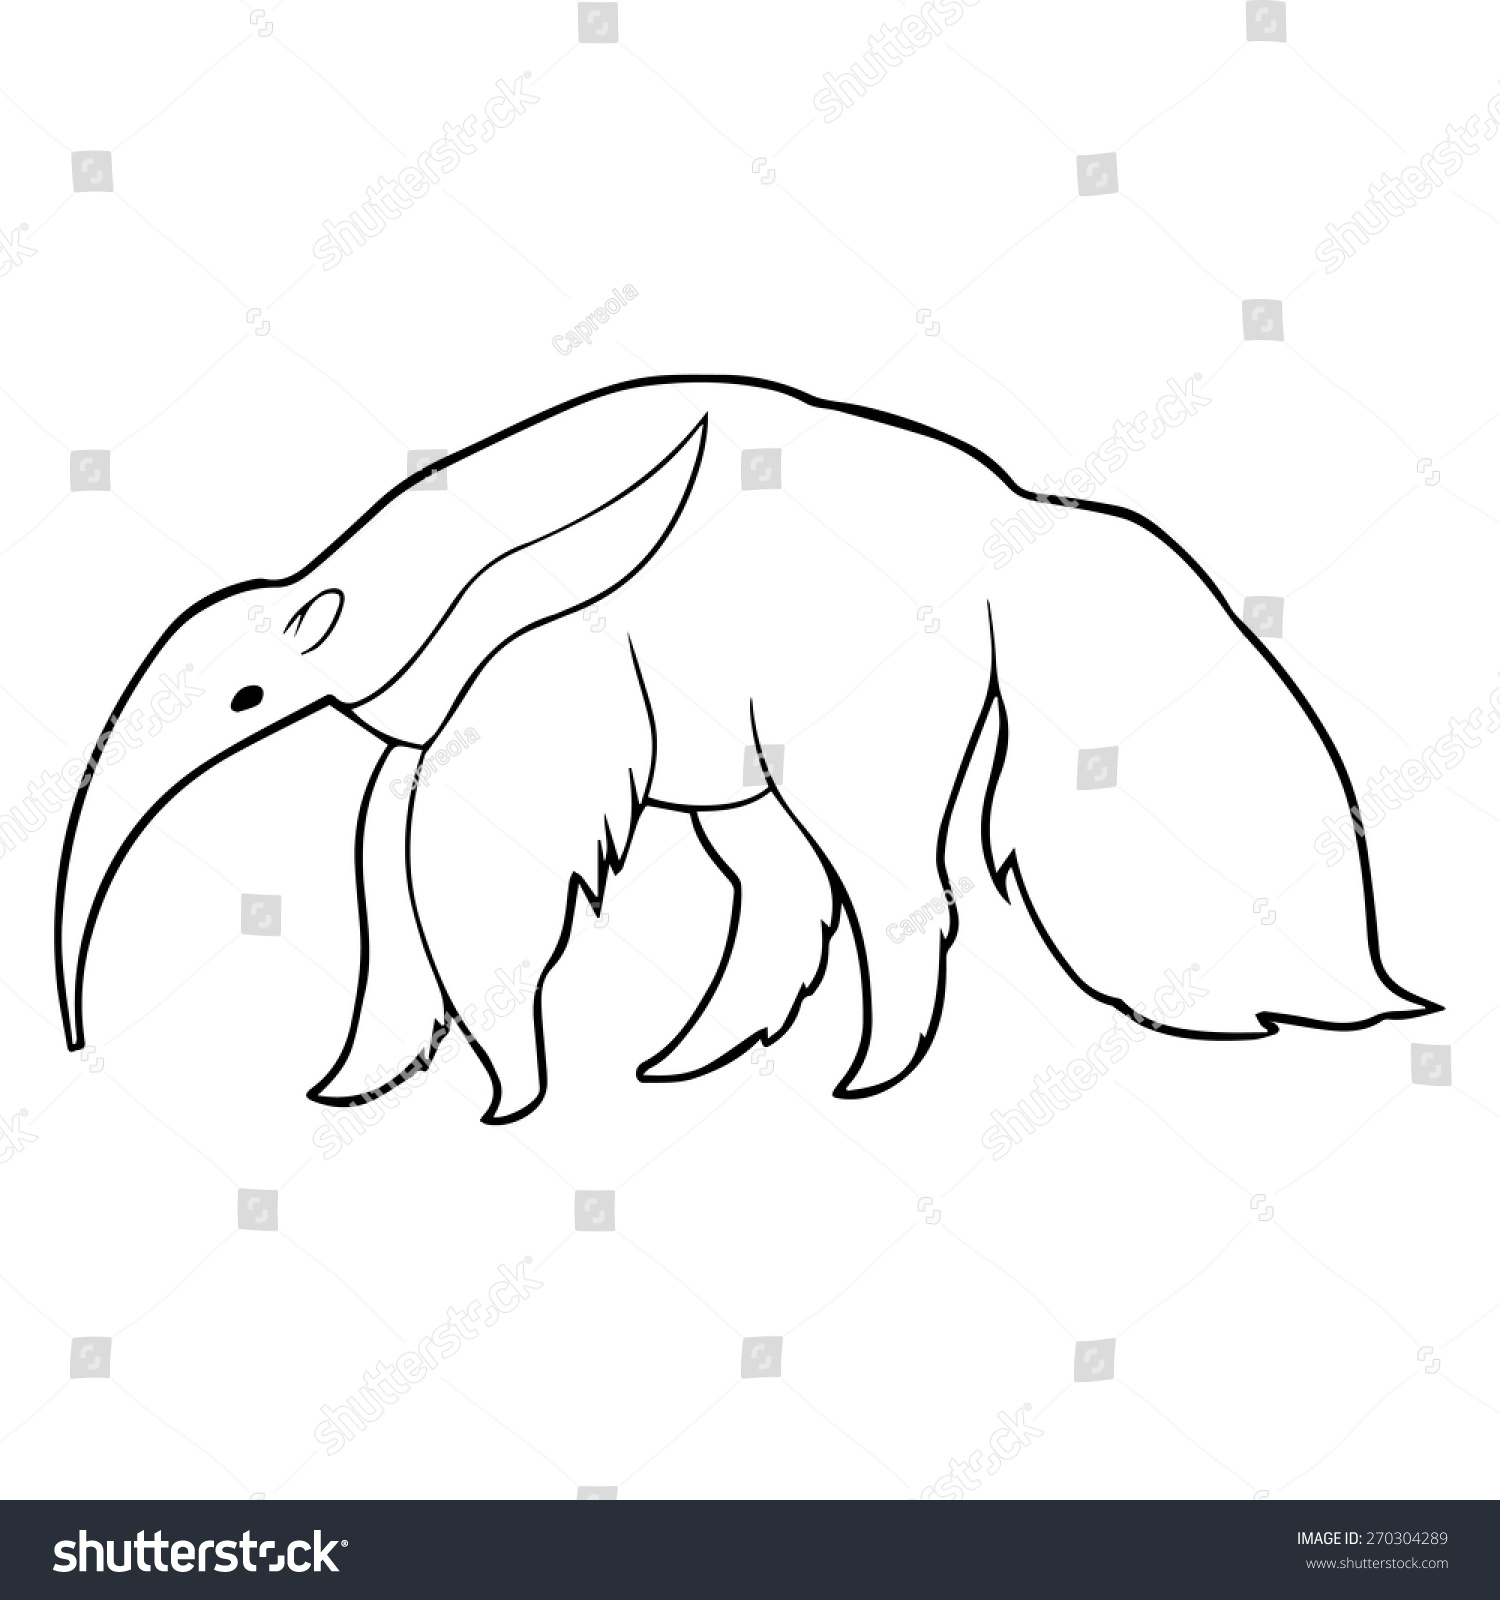 anteater outline illustration stock vector 270304289 shutterstock